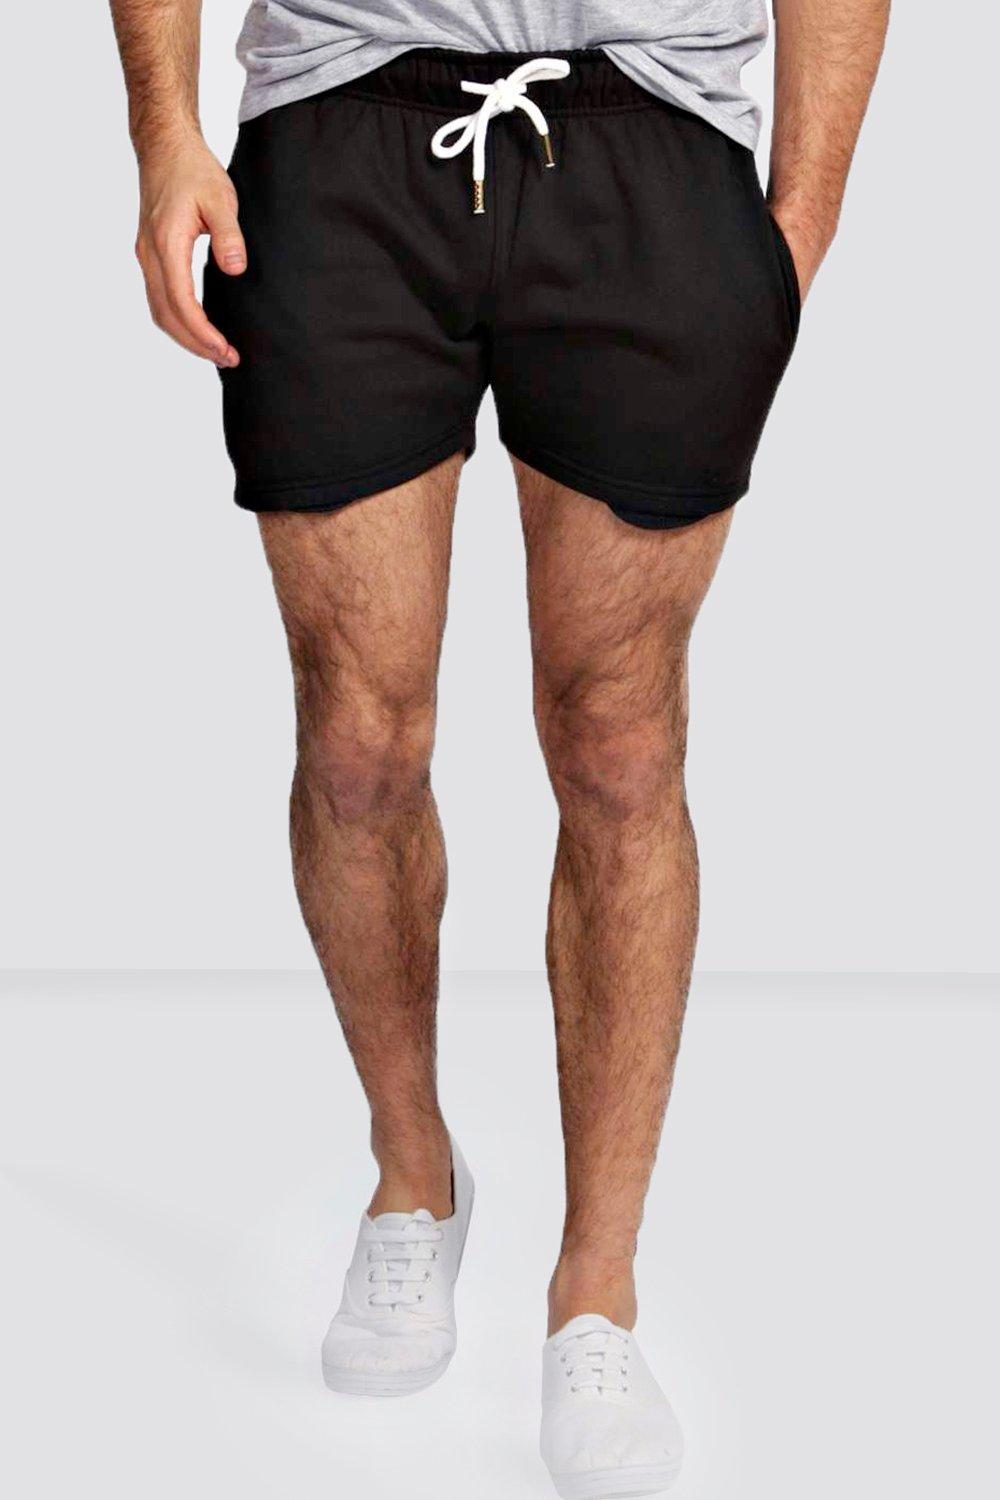 Jersey Shorts in Shorter Length